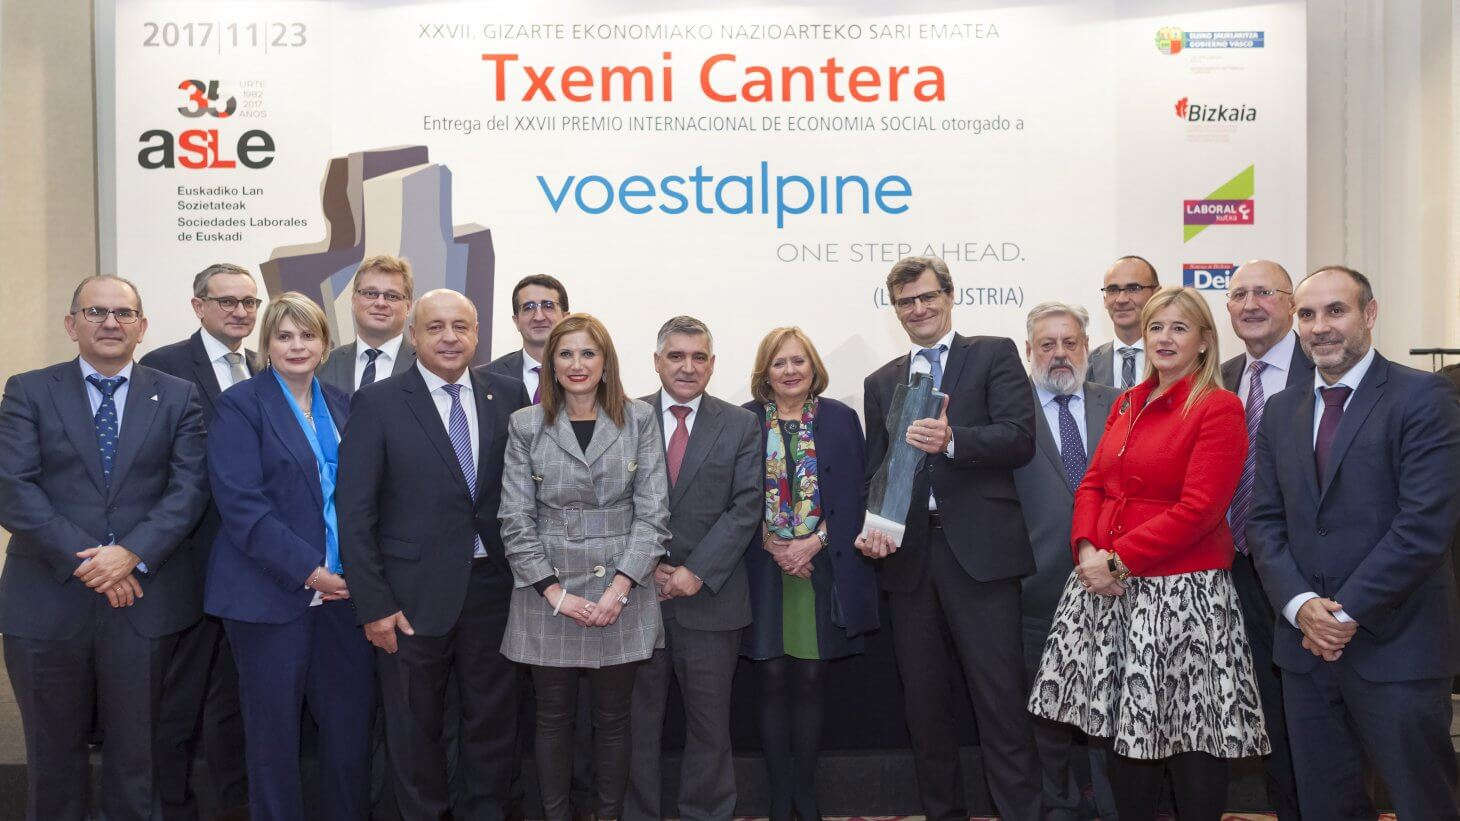 The prize-winning employee participation model of voestalpine